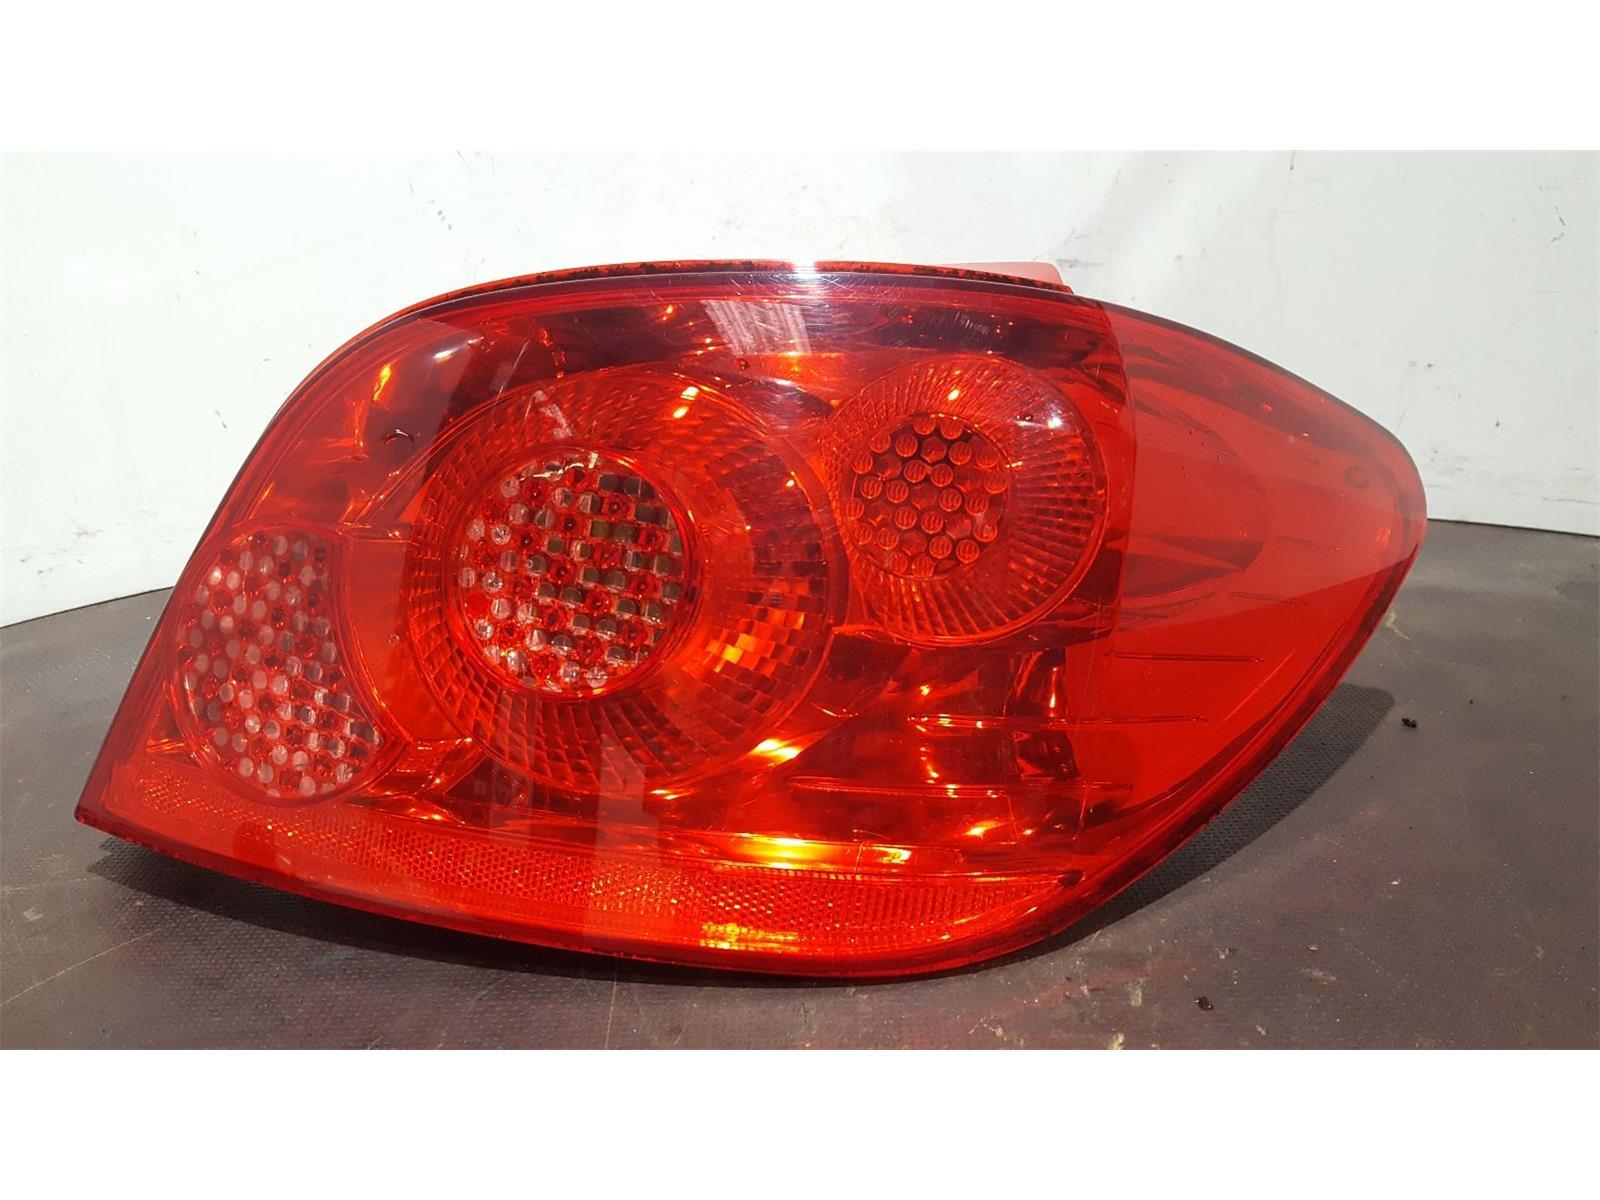 Peugeot 307 2005 To 2008 O/S Right Drivers Rear Light 6351X1 5 Door  Hatchback